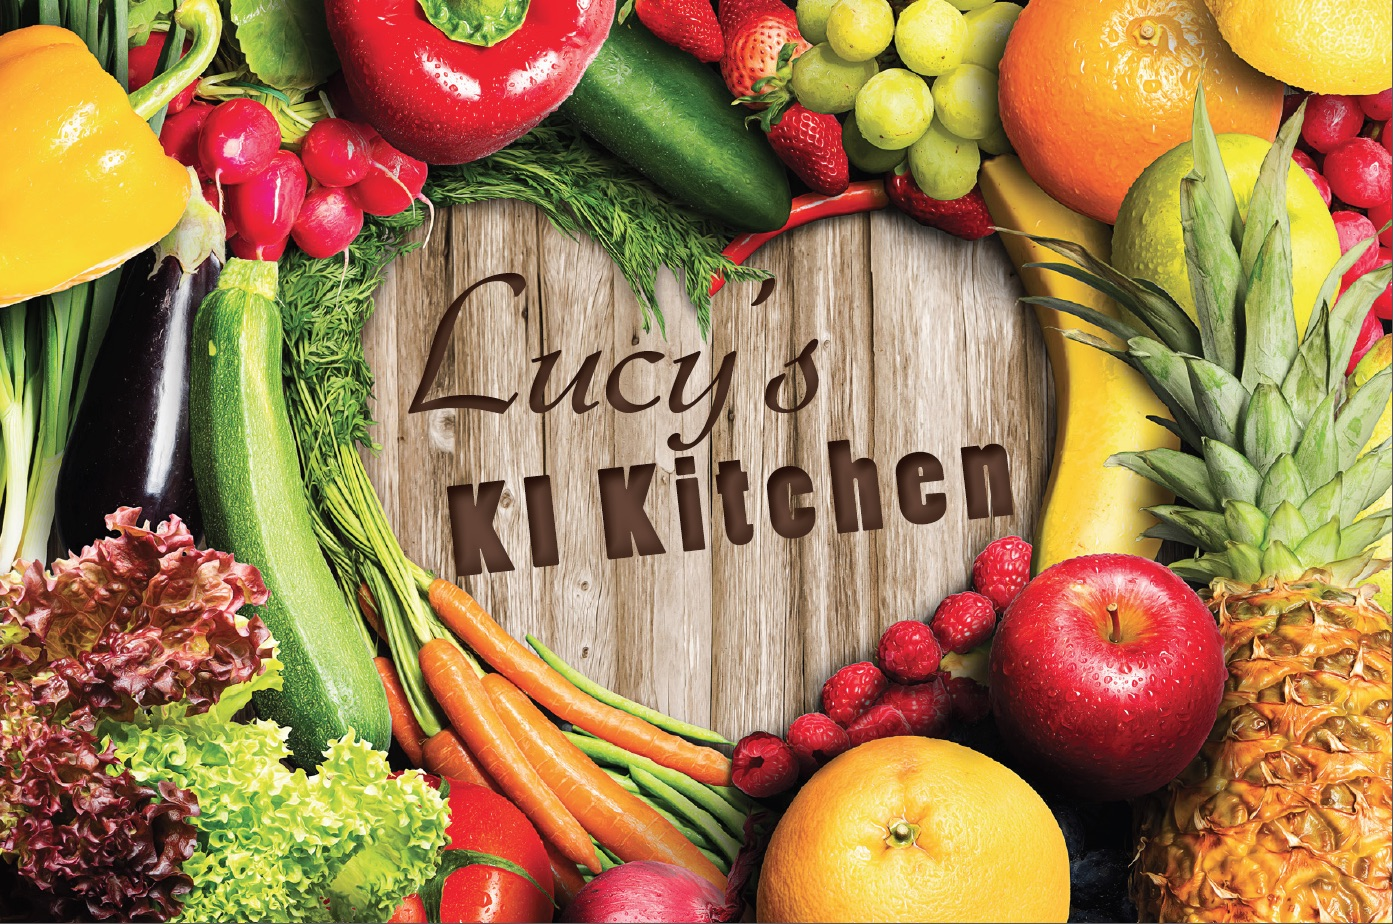 Lucy's KI Kitchen